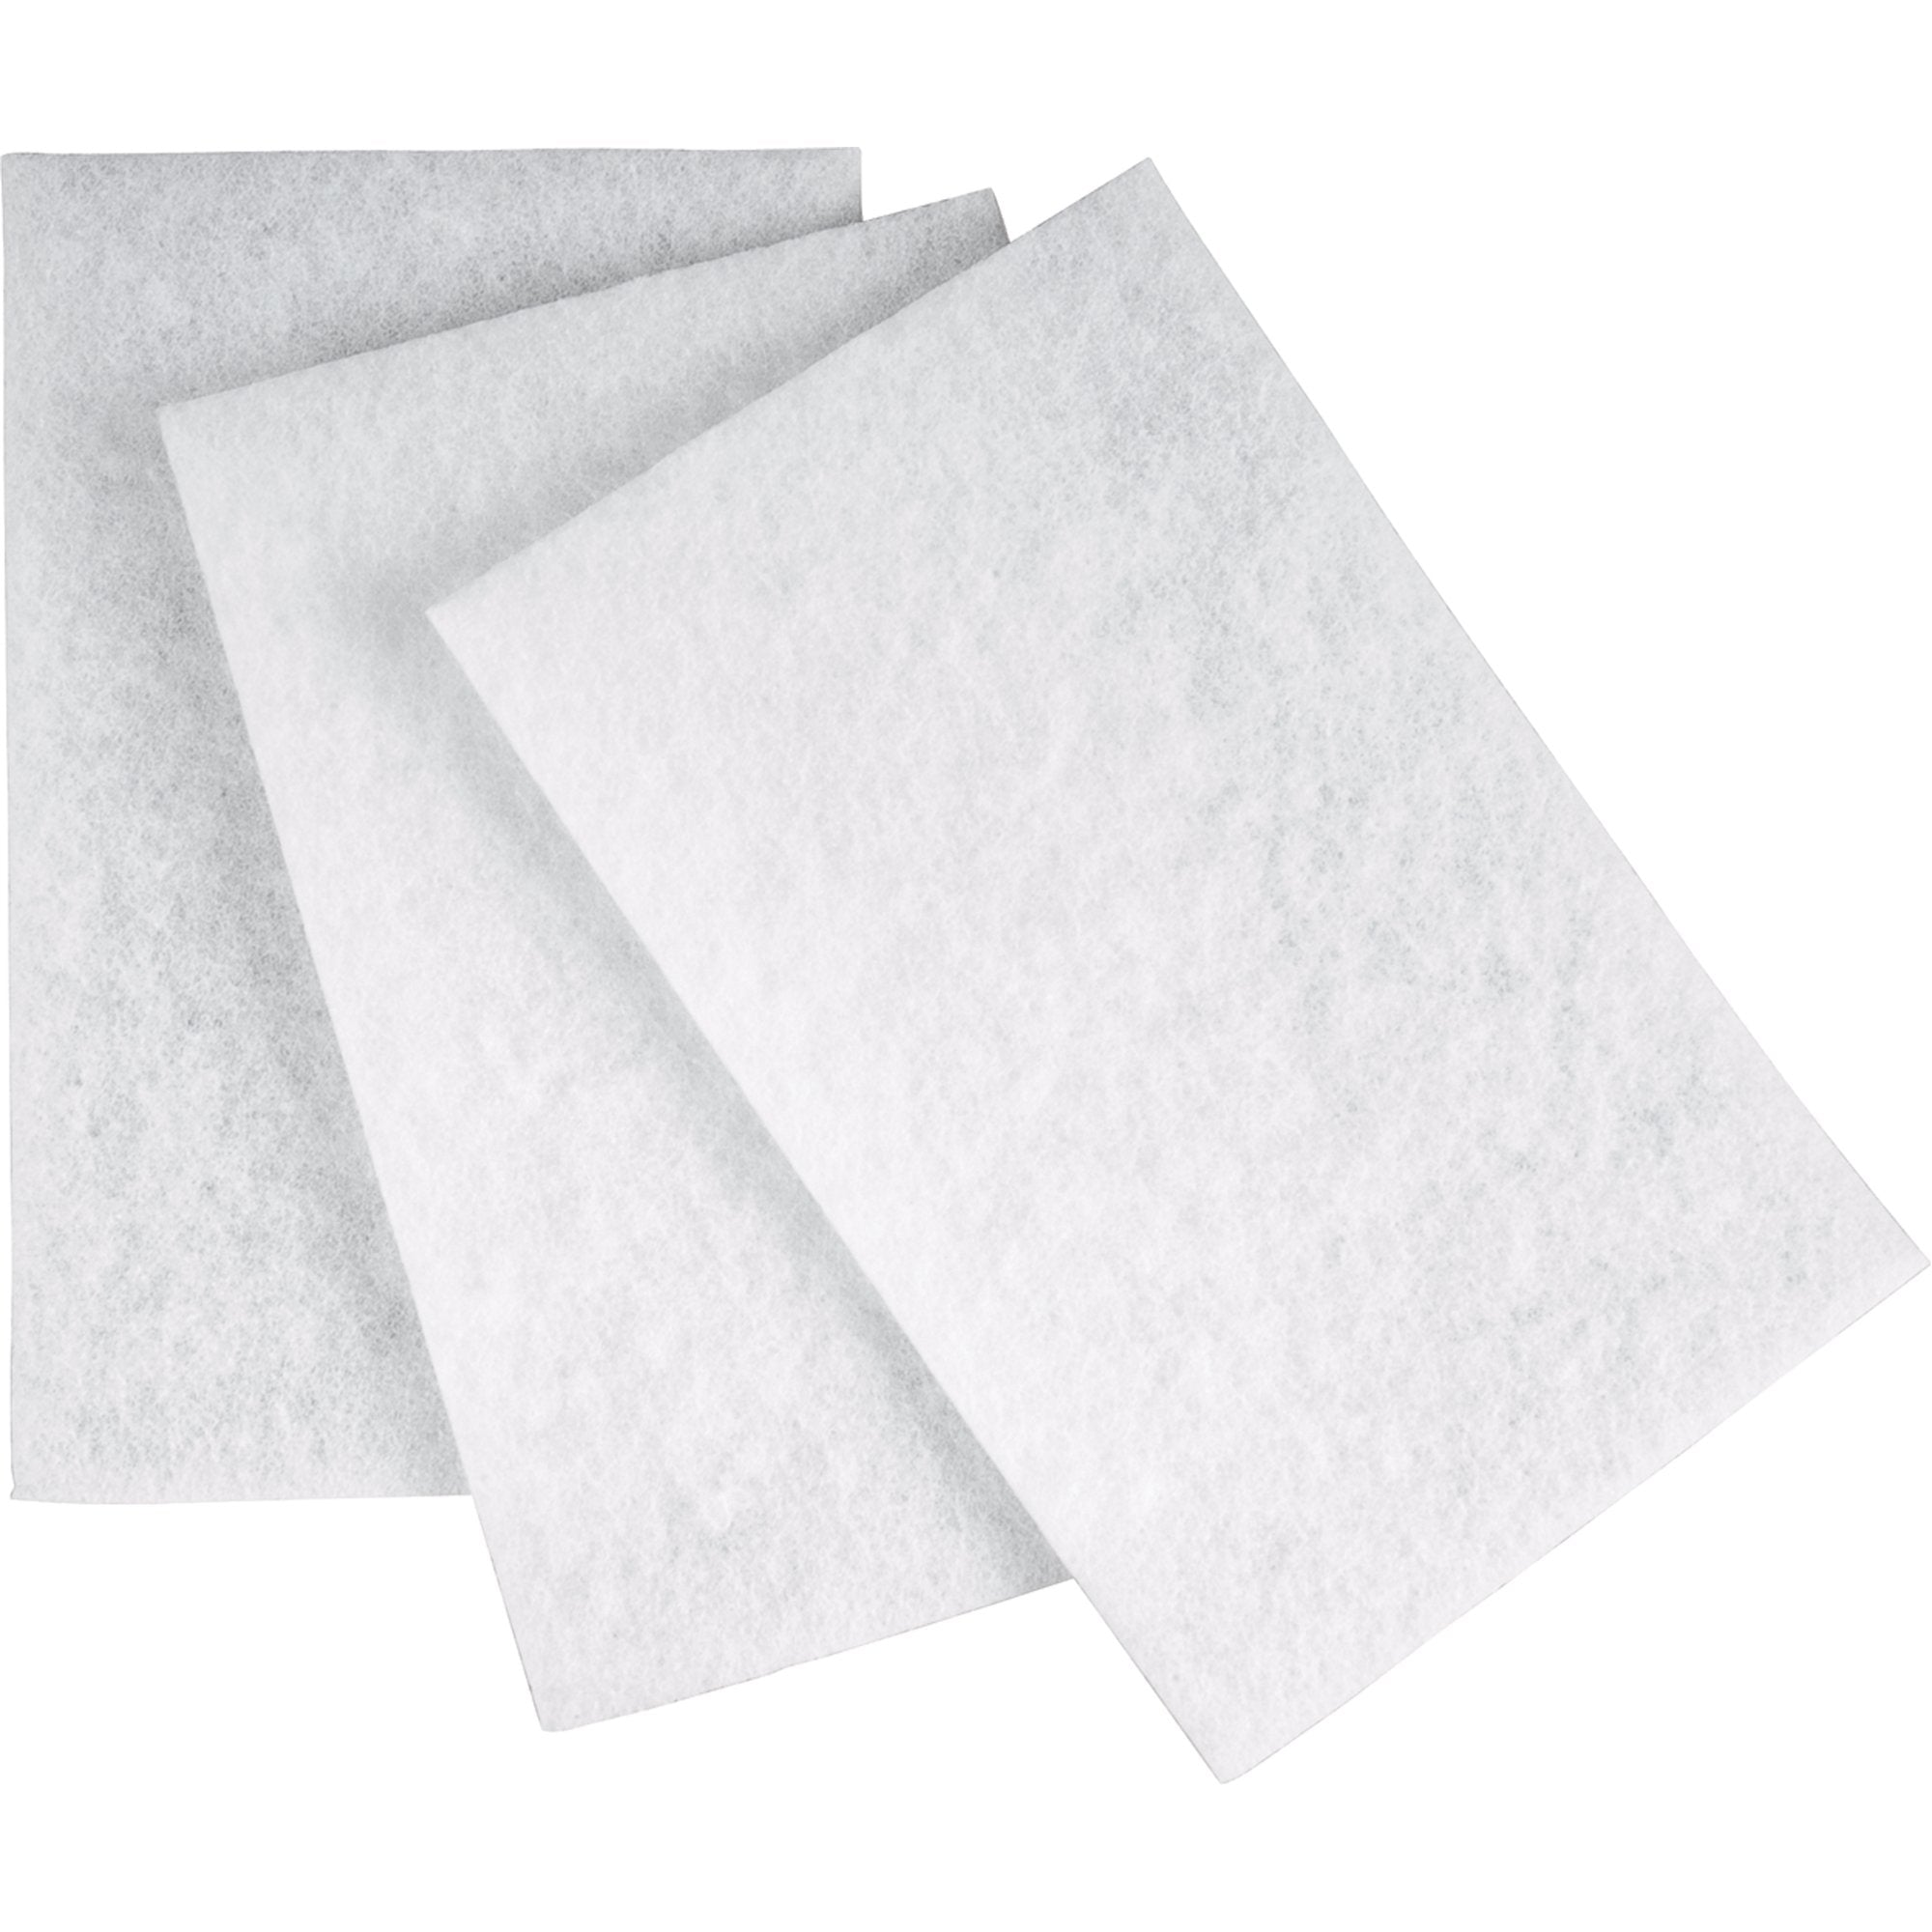 Norton White Non-Abrasive Pad, available at Creative Paint in San Francisco, South Bay & East Bay.